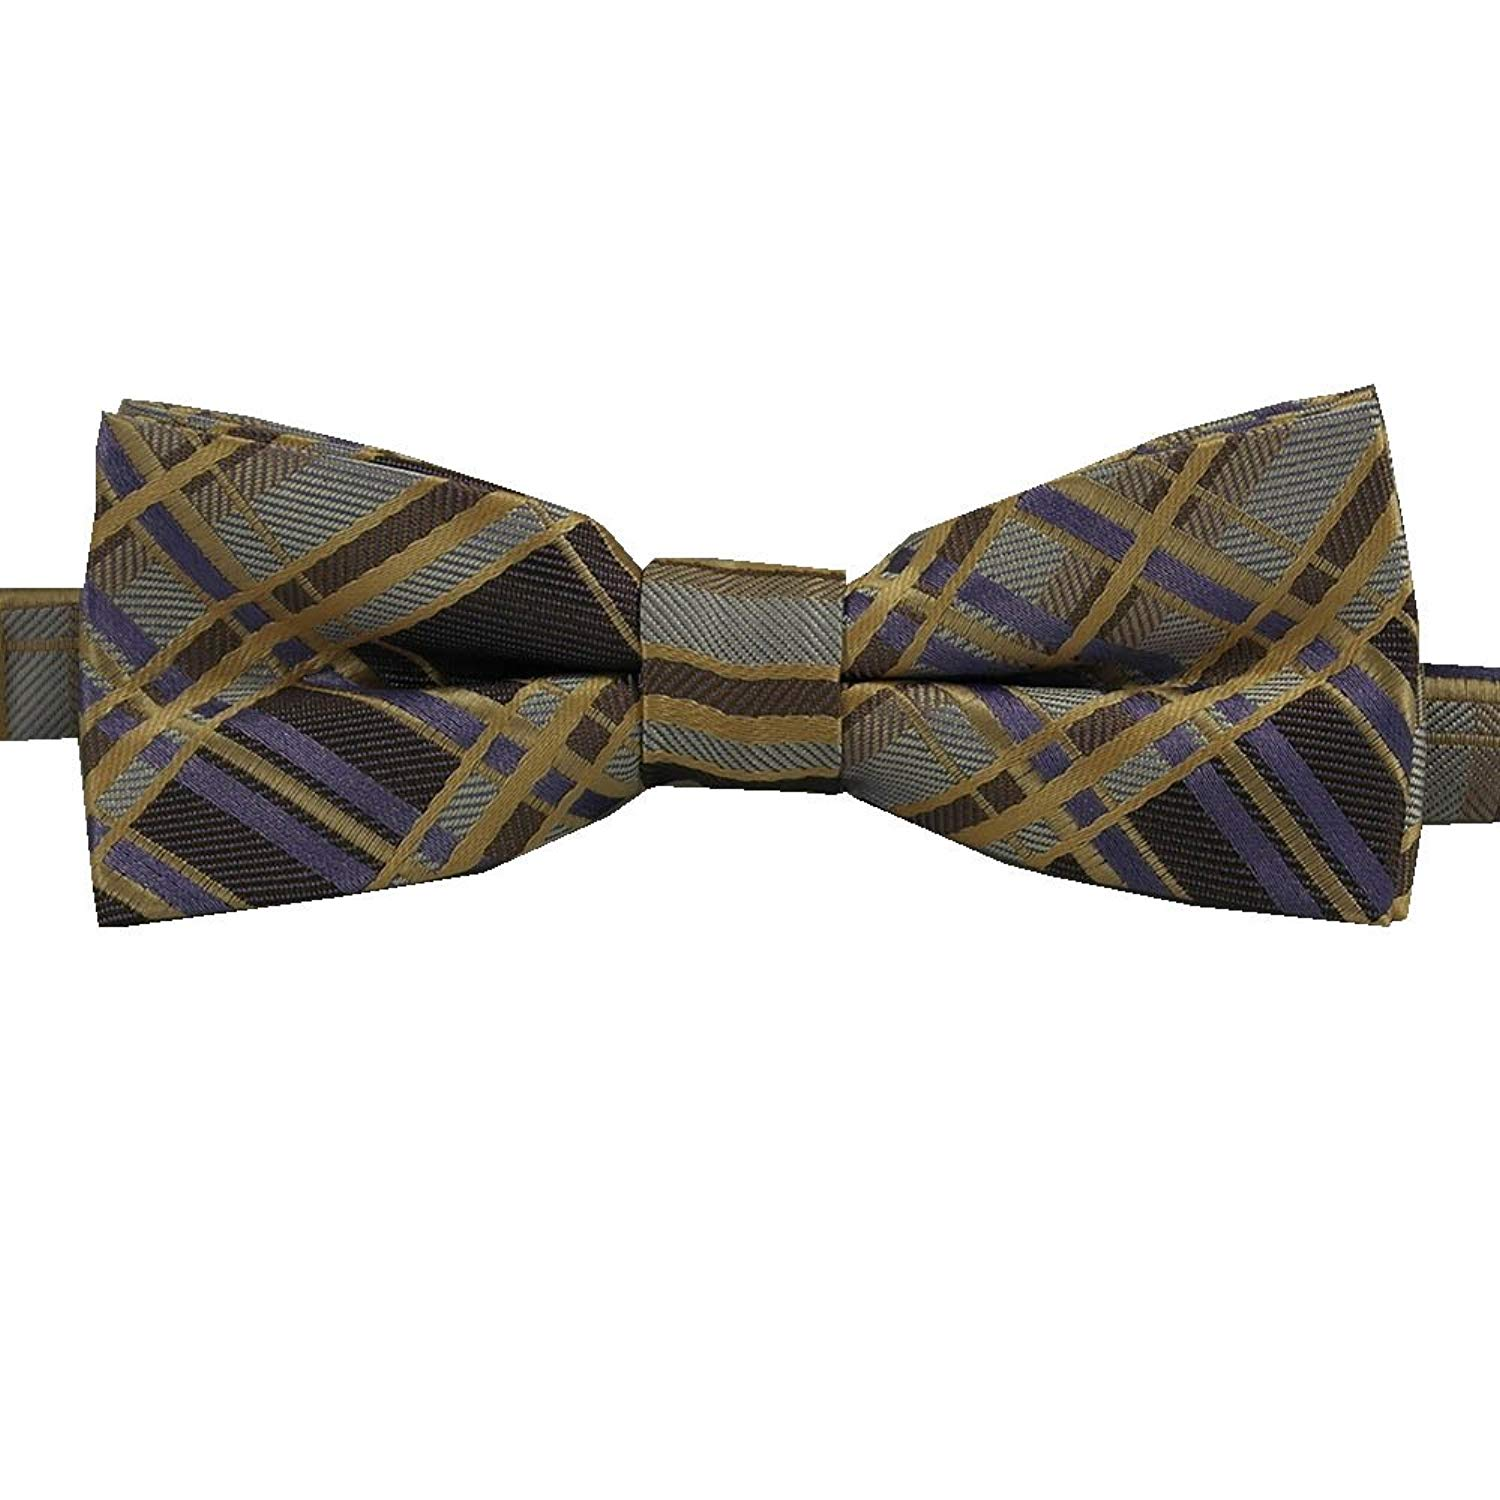 Gold adjustable bow tie band fits children 0-13 years old Purple and Brown Plaid Childrens Pretied Bow tie Lavender